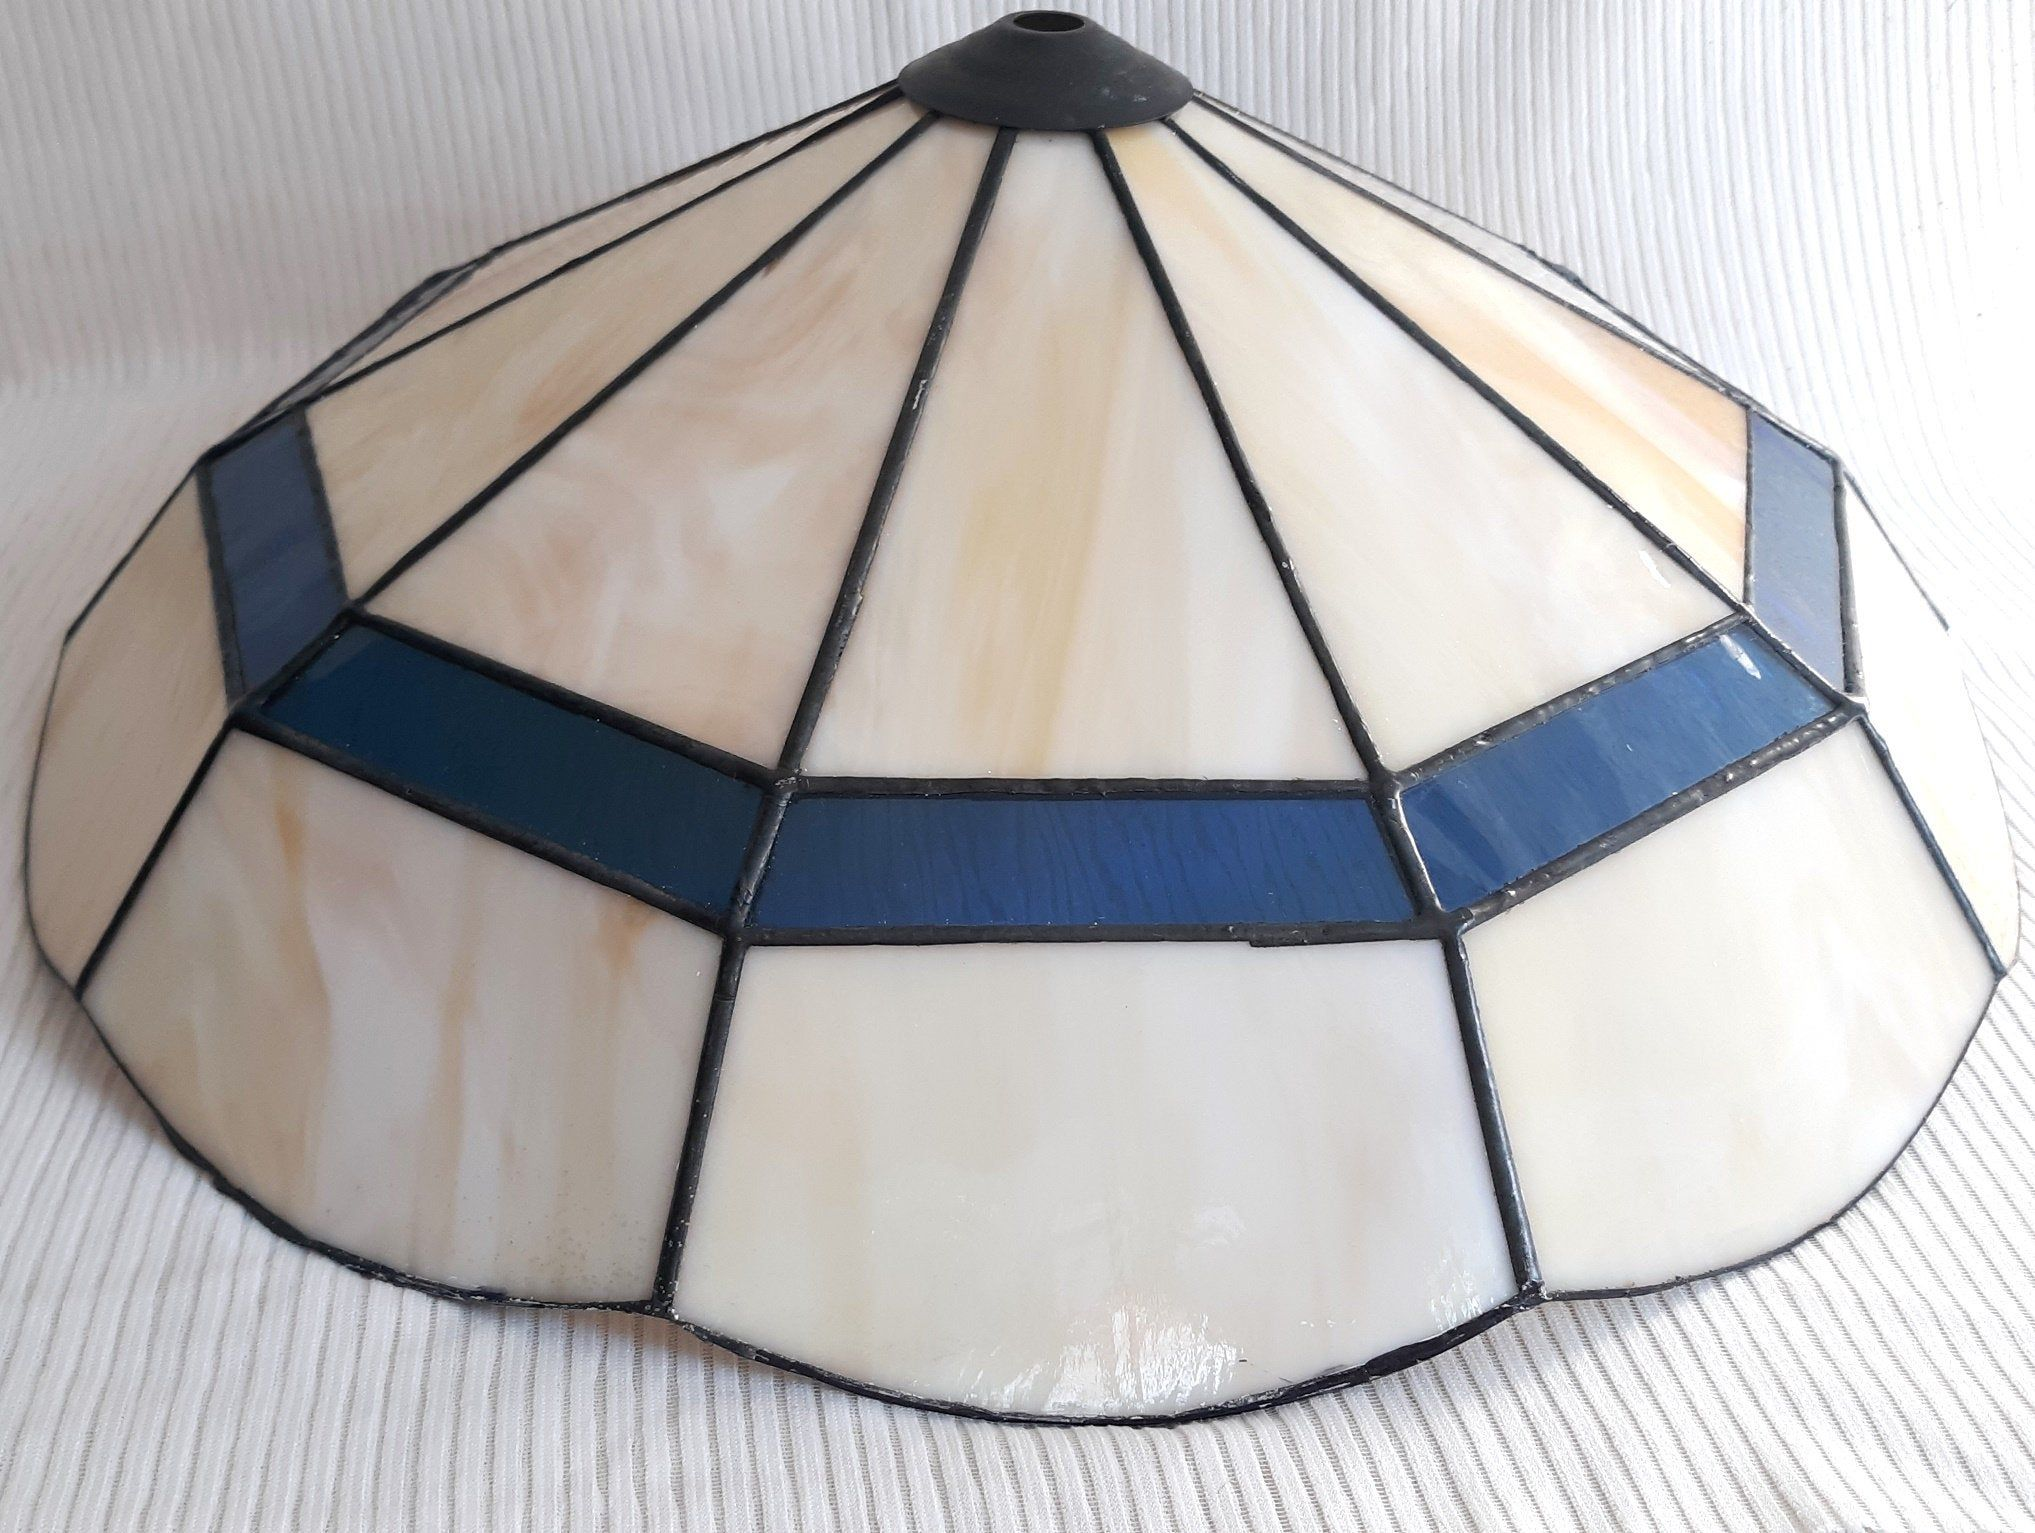 Tiffany Bistro Style Stained Glass Domed Lamp Shade Pendant Ceiling Lamp Dining Table Living Room Kitchen In 2020 Pendant Ceiling Lamp Hanging Lamp Shade Hanging Lamp